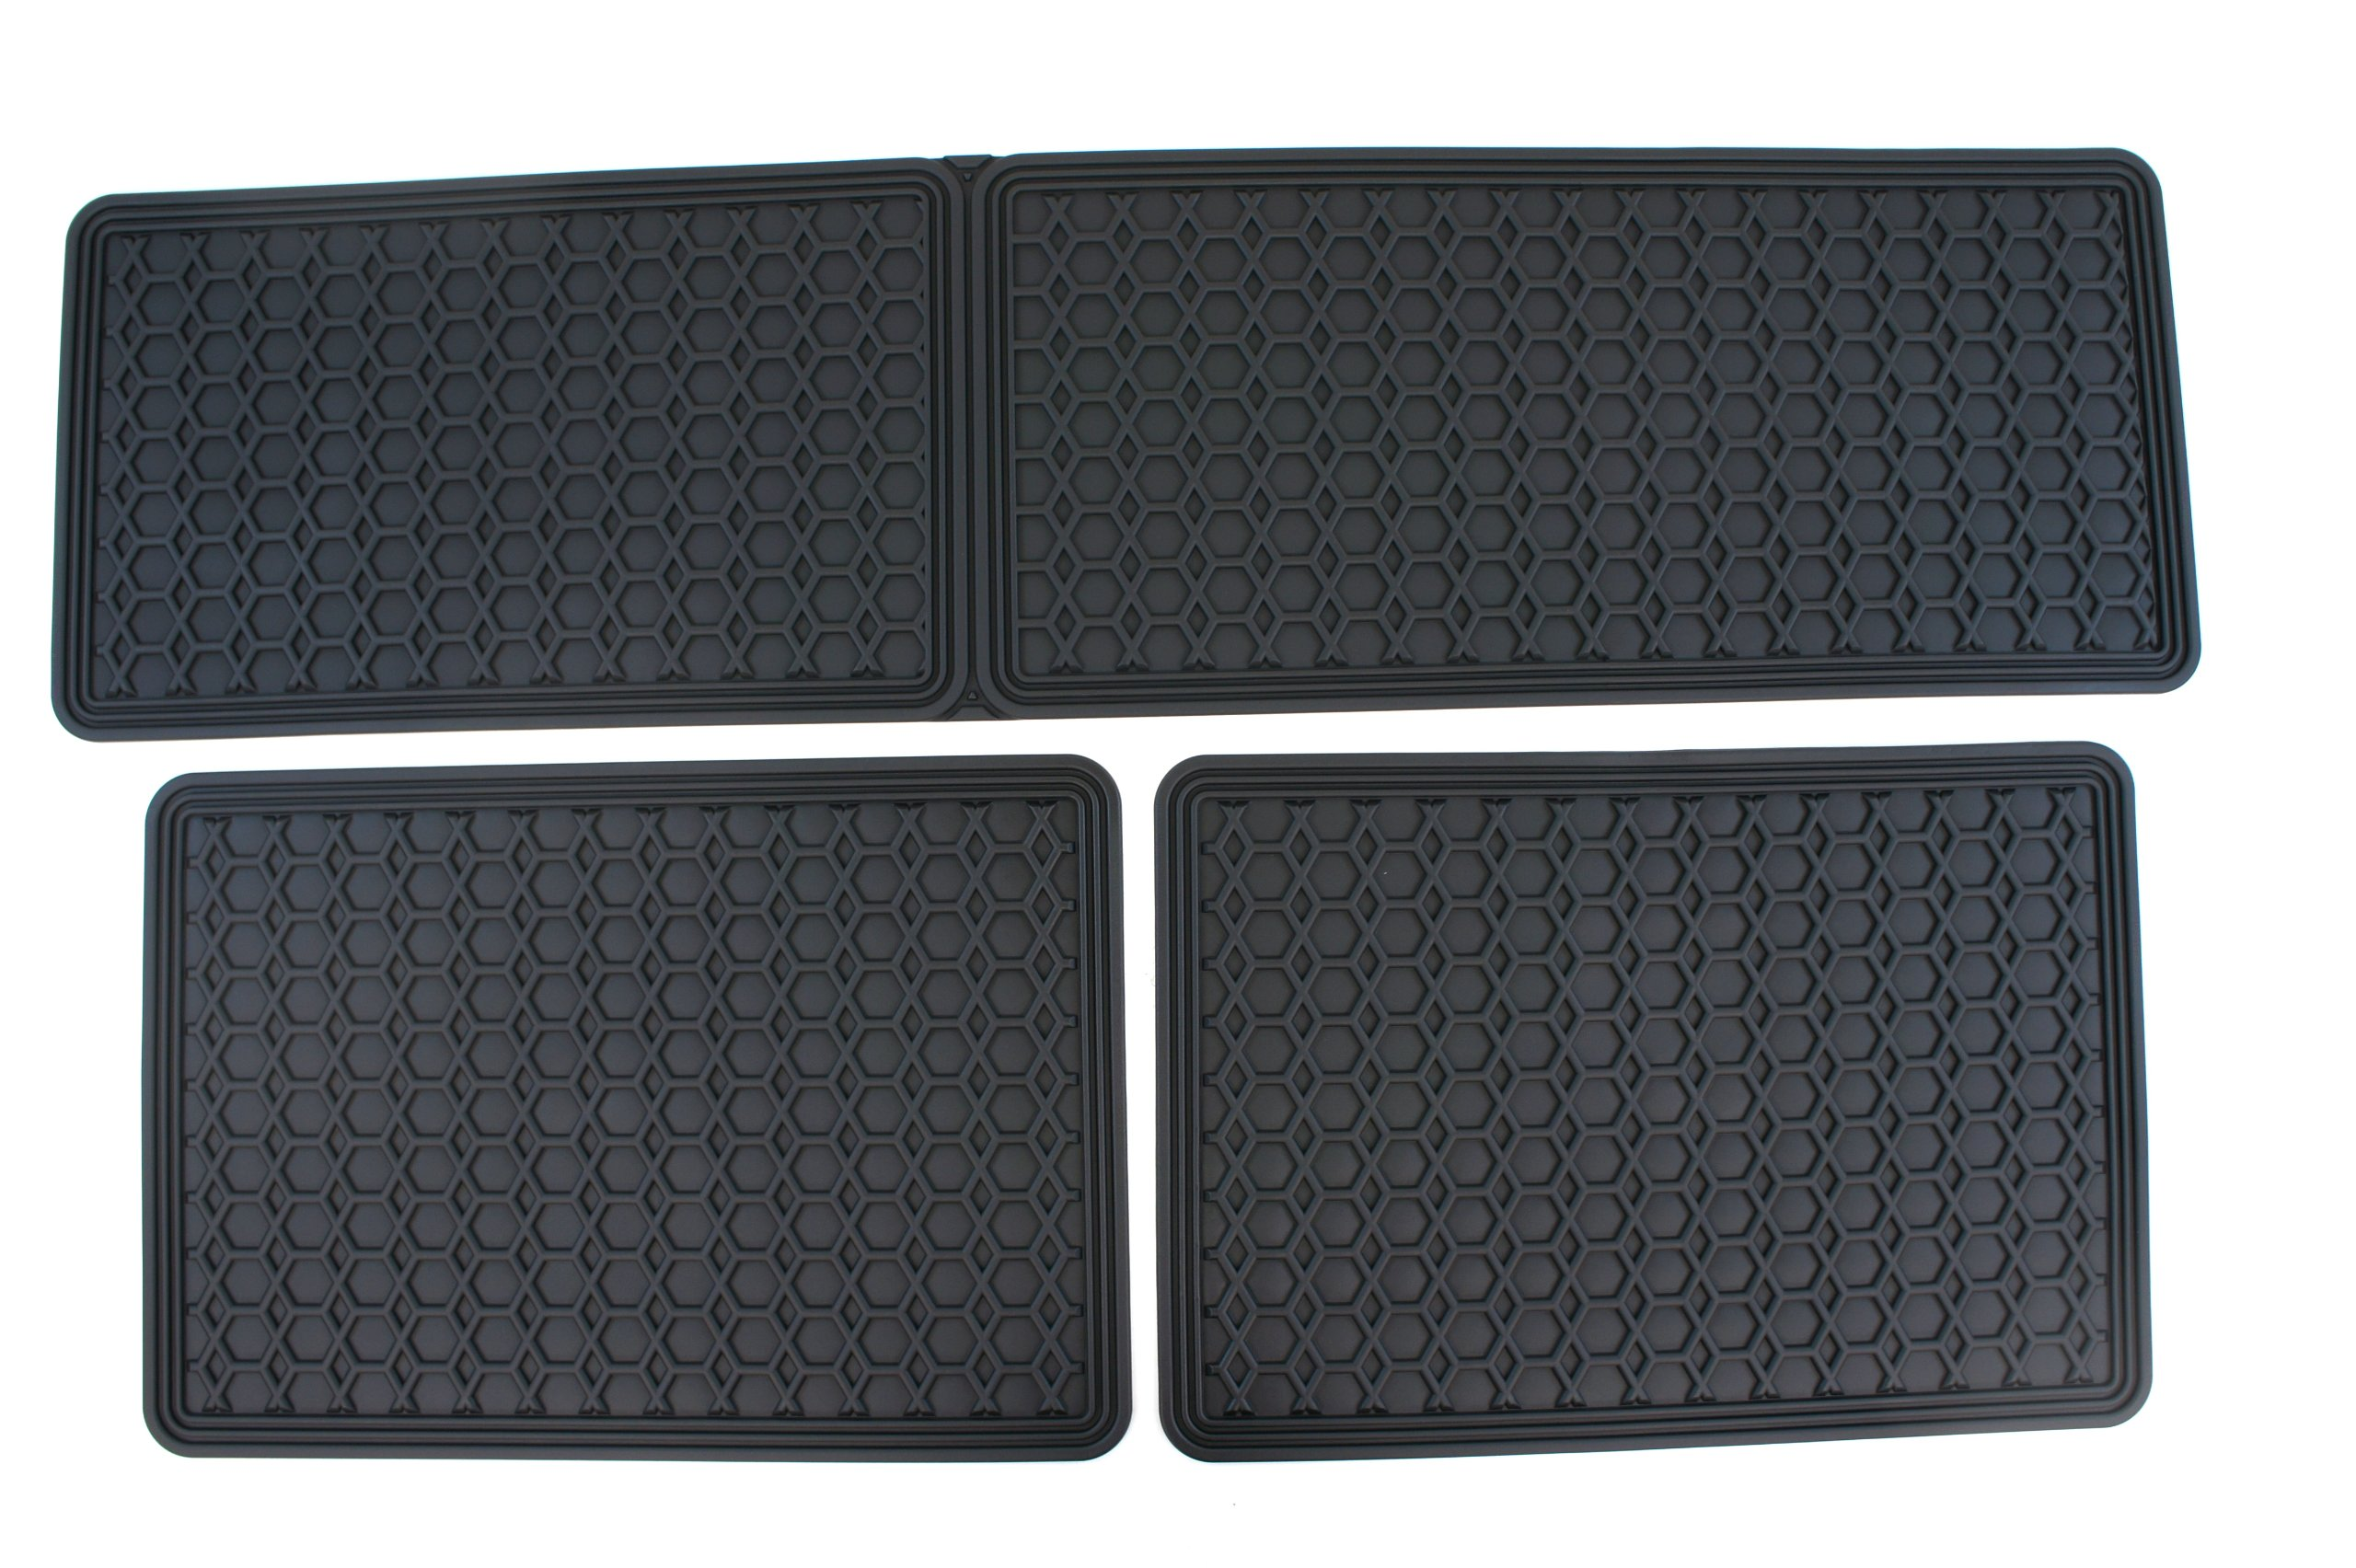 Genuine Toyota Accessories PU320-08110-01 Front and Rear All-Weather Floor Mat - (Black), Set of 6